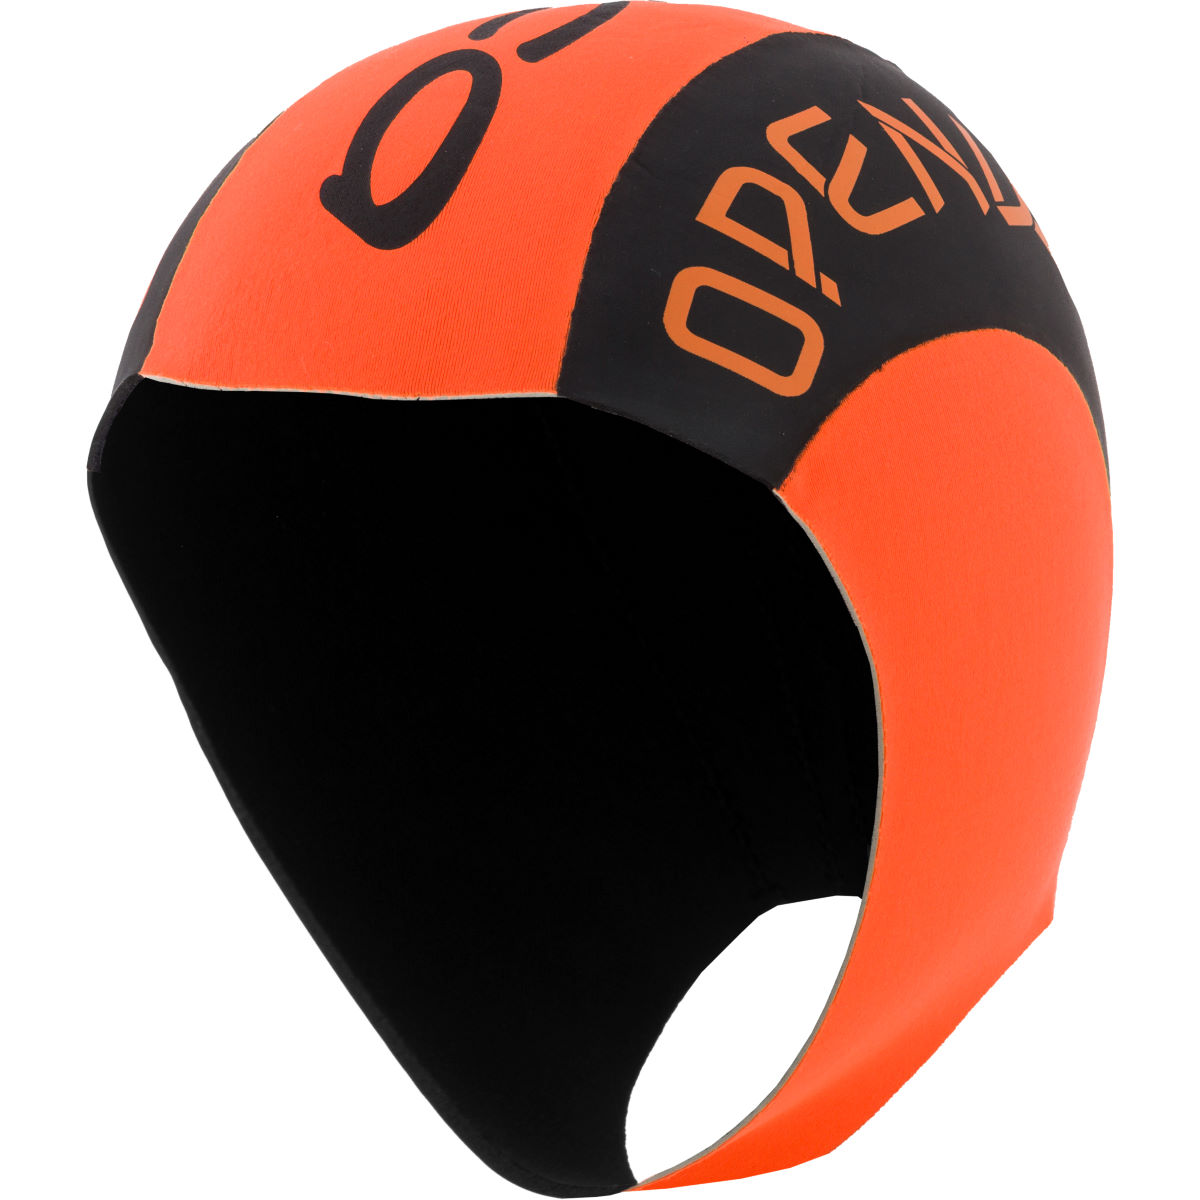 Bonnet de natation Orca (néoprène, 2016) - s/m High Vis Orange Bonnets de bain